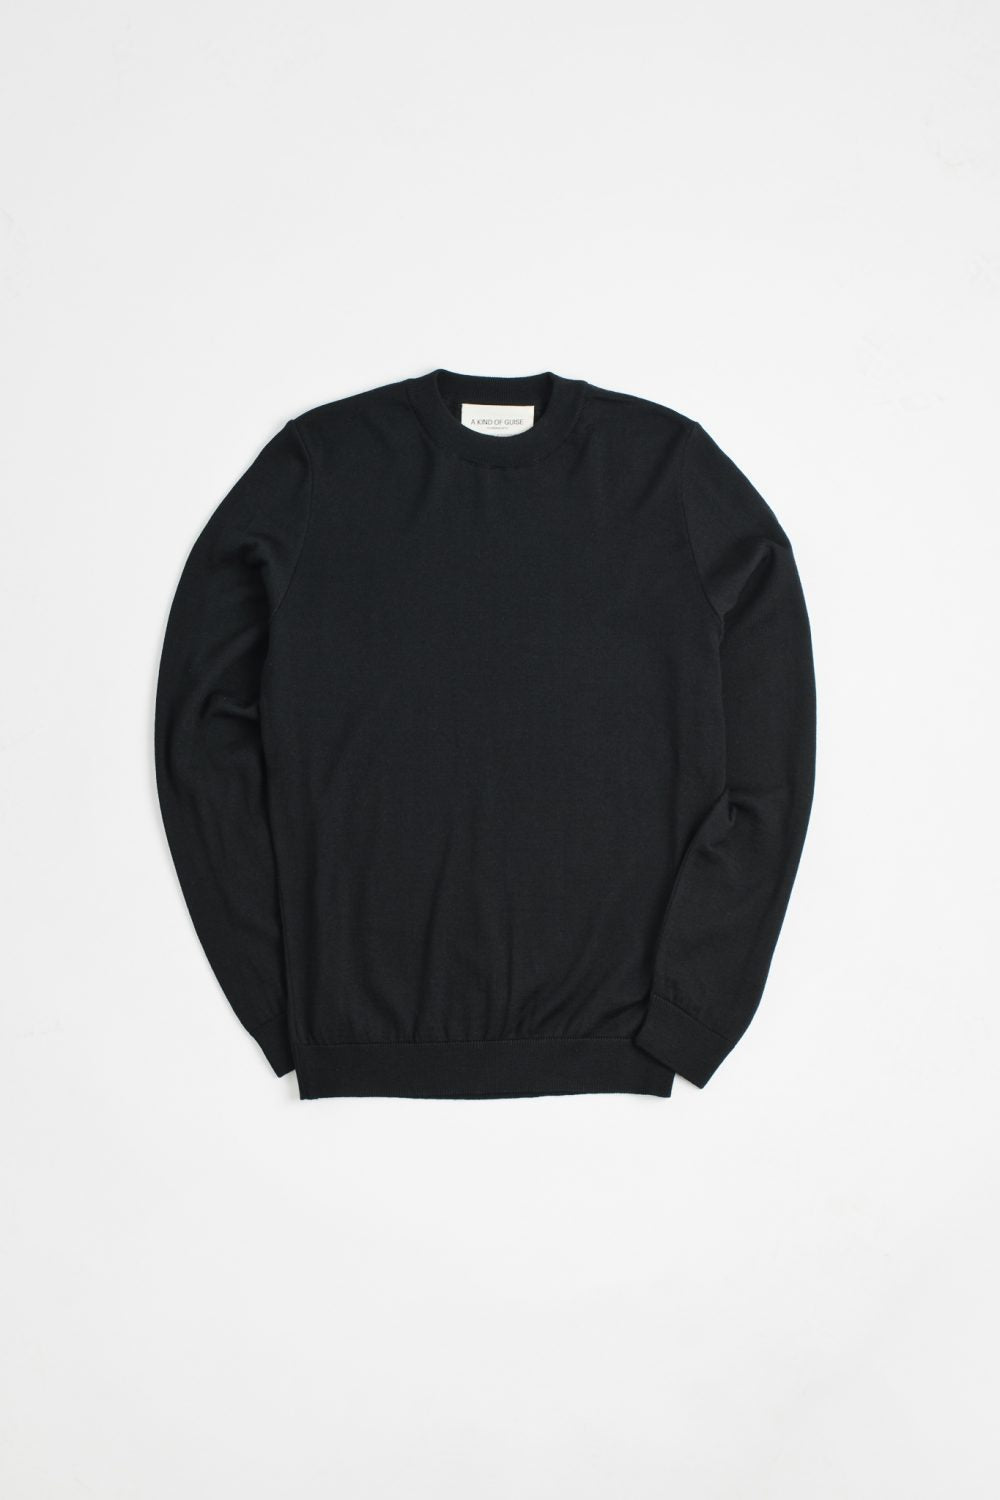 A Kind of Guise Permanents Crewneck, Black-M